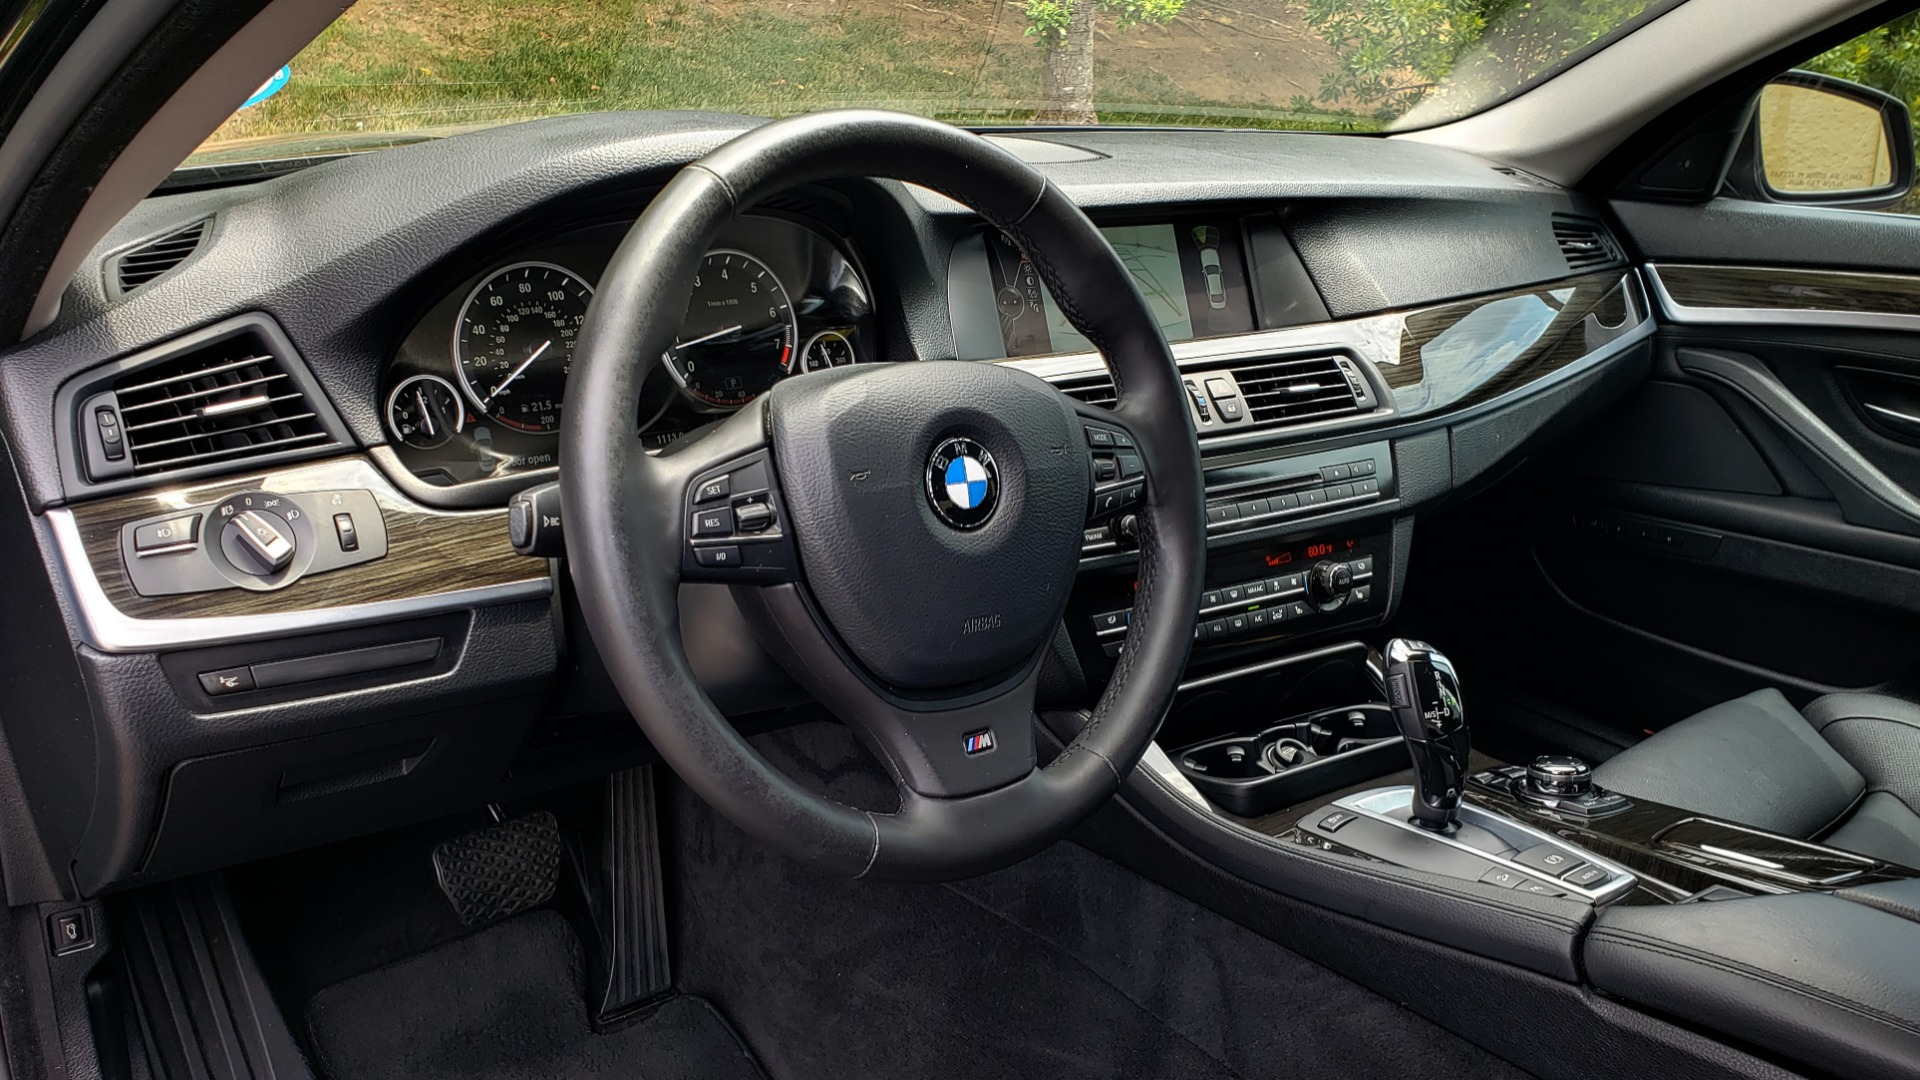 Used 2013 BMW 5 SERIES 550I XDRIVE LUX PKG / EXEC / COLD WTHR / NAV / SUNROOF / REARVIEW for sale $17,995 at Formula Imports in Charlotte NC 28227 30